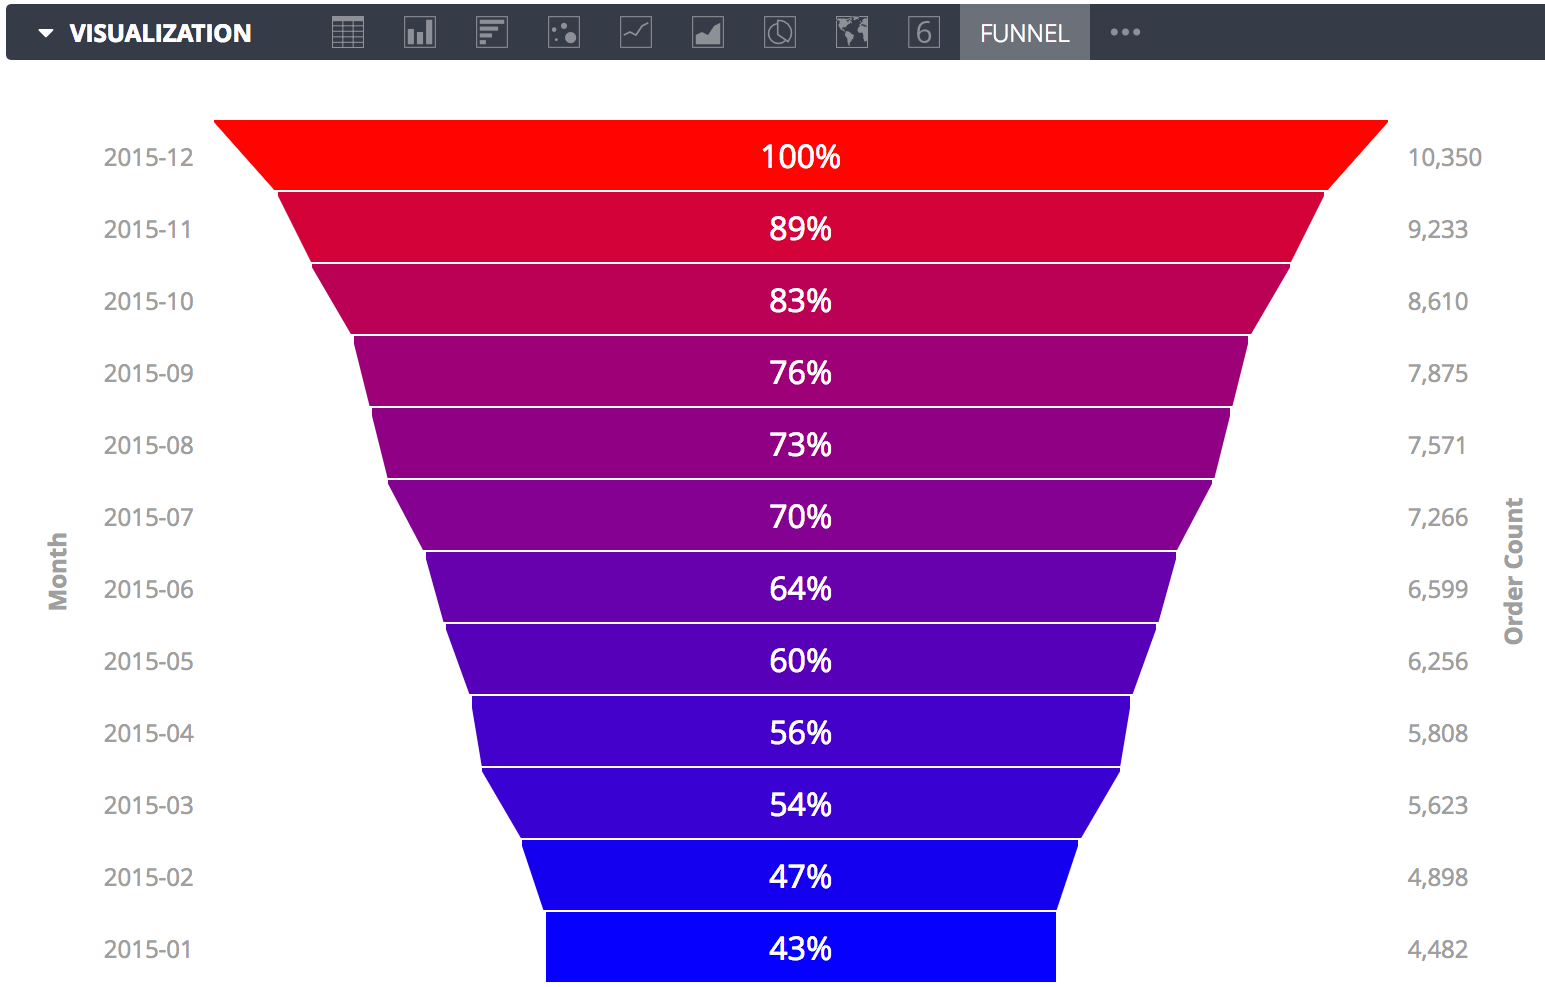 explore-vis-funnel-410.png